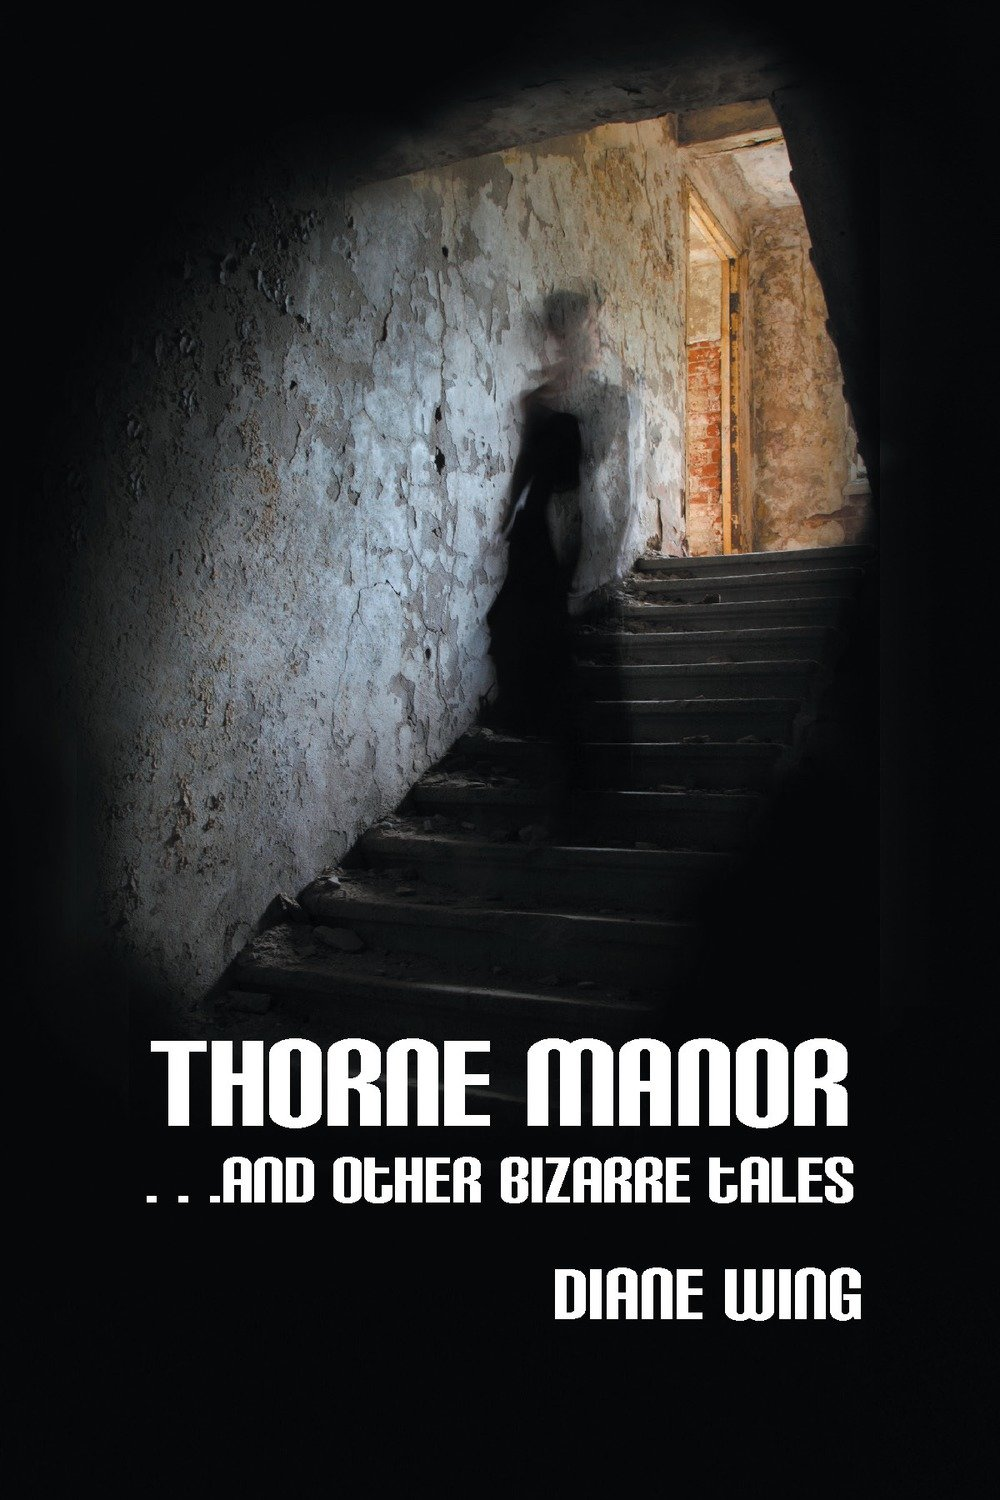 Thorne Manor: And Other Bizarre Tales